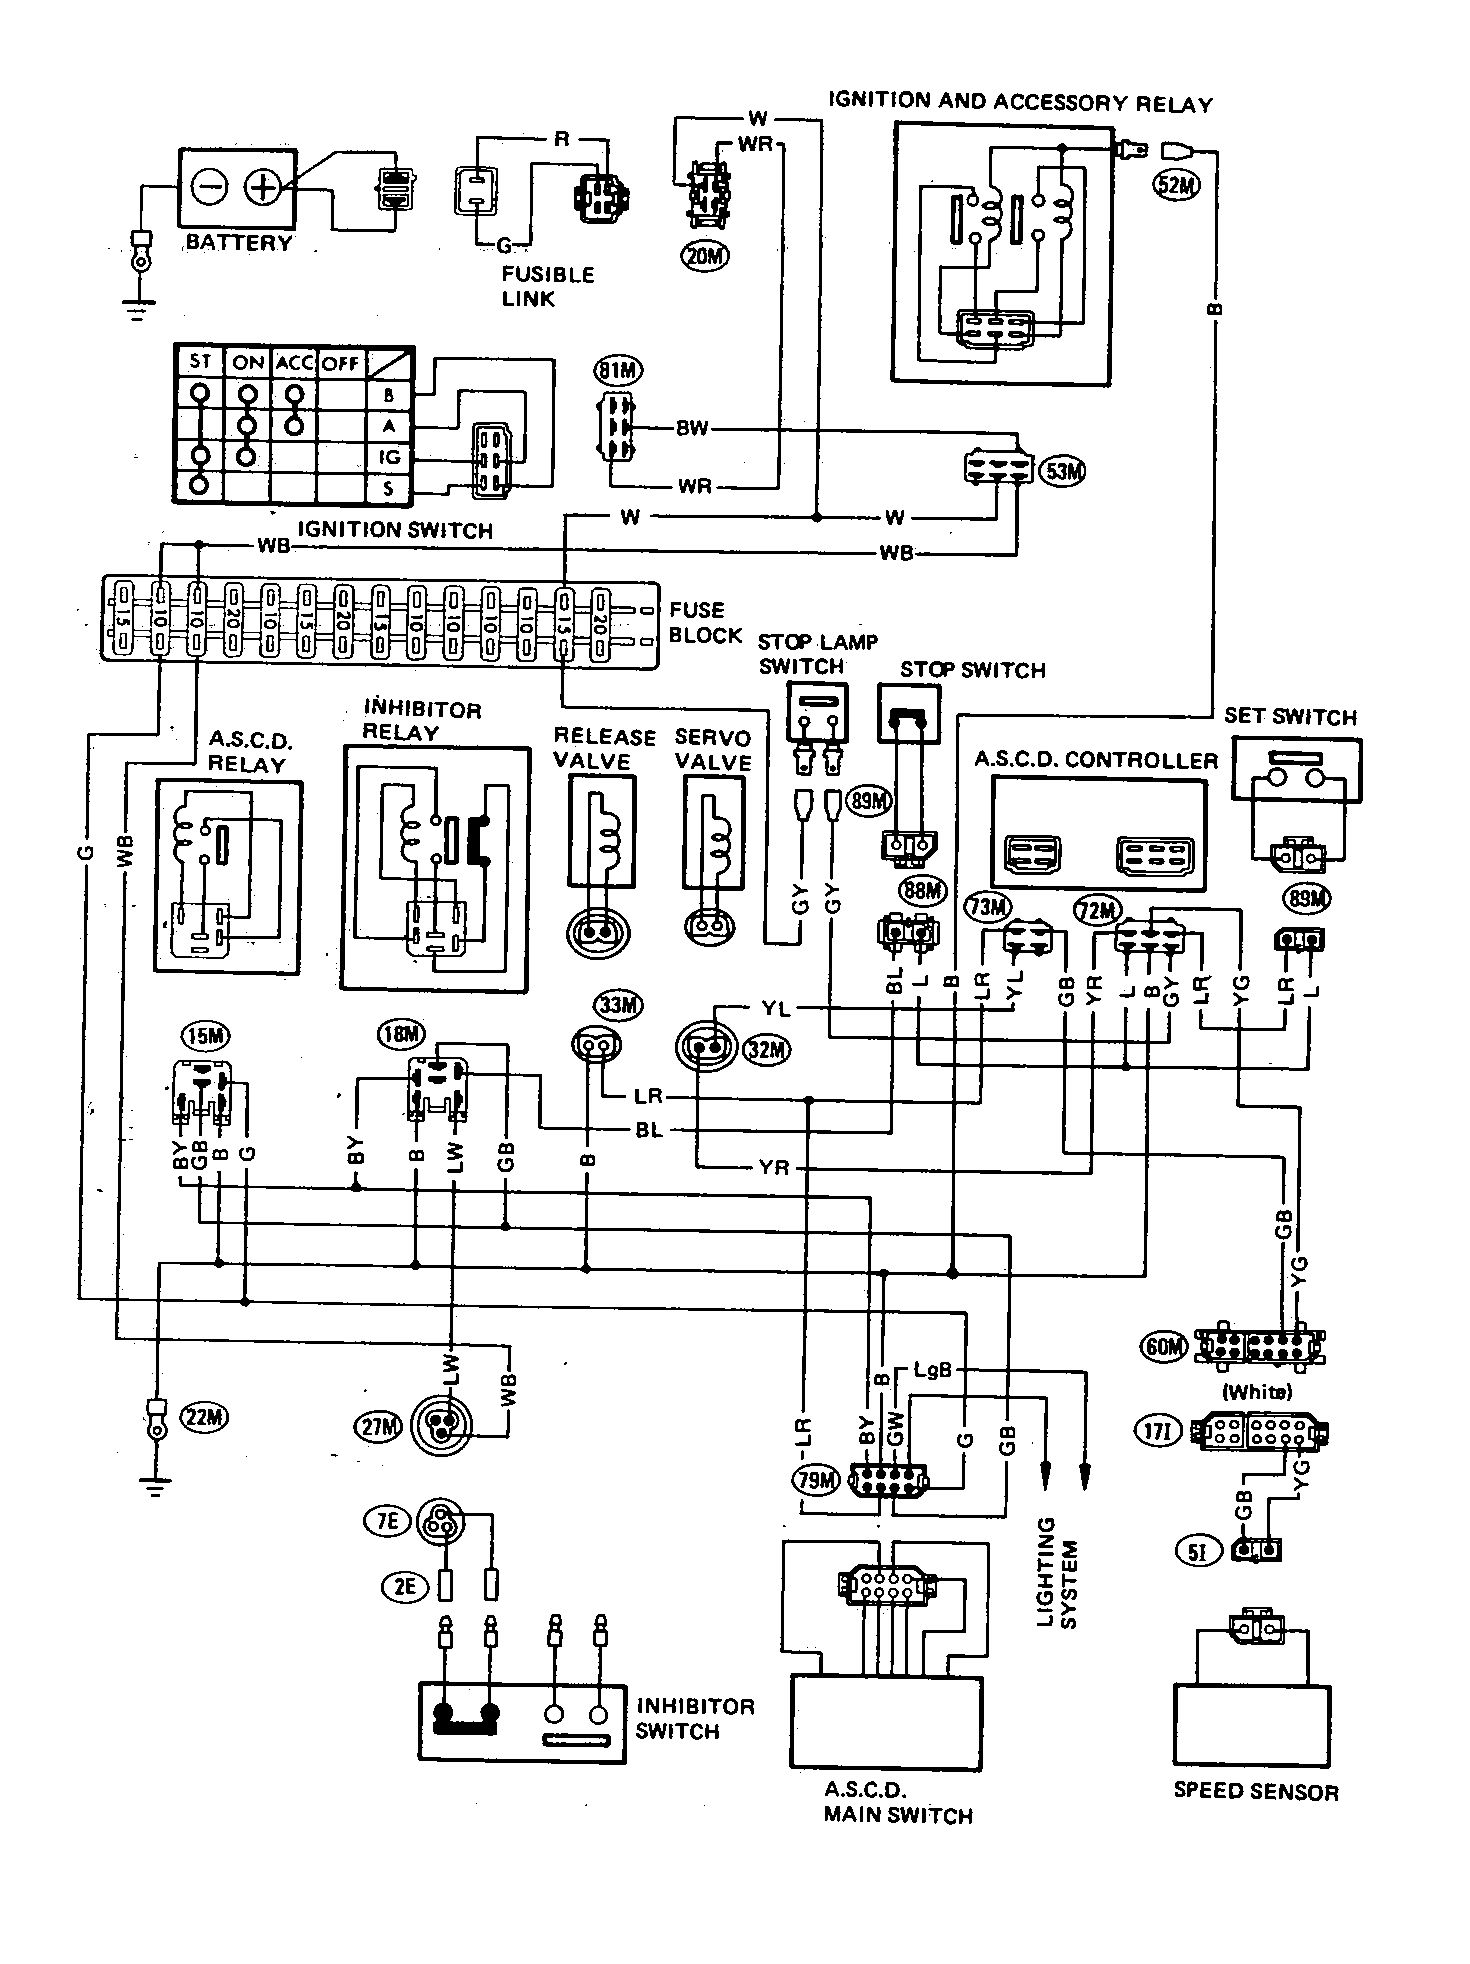 Lg Mini Split Wiring Diagram 28 Images Inverter Air Conditioner Coolers Nissan Datsun 200sx 1980 Wire Automatic Speed Control Devixe Cassette Error Codes